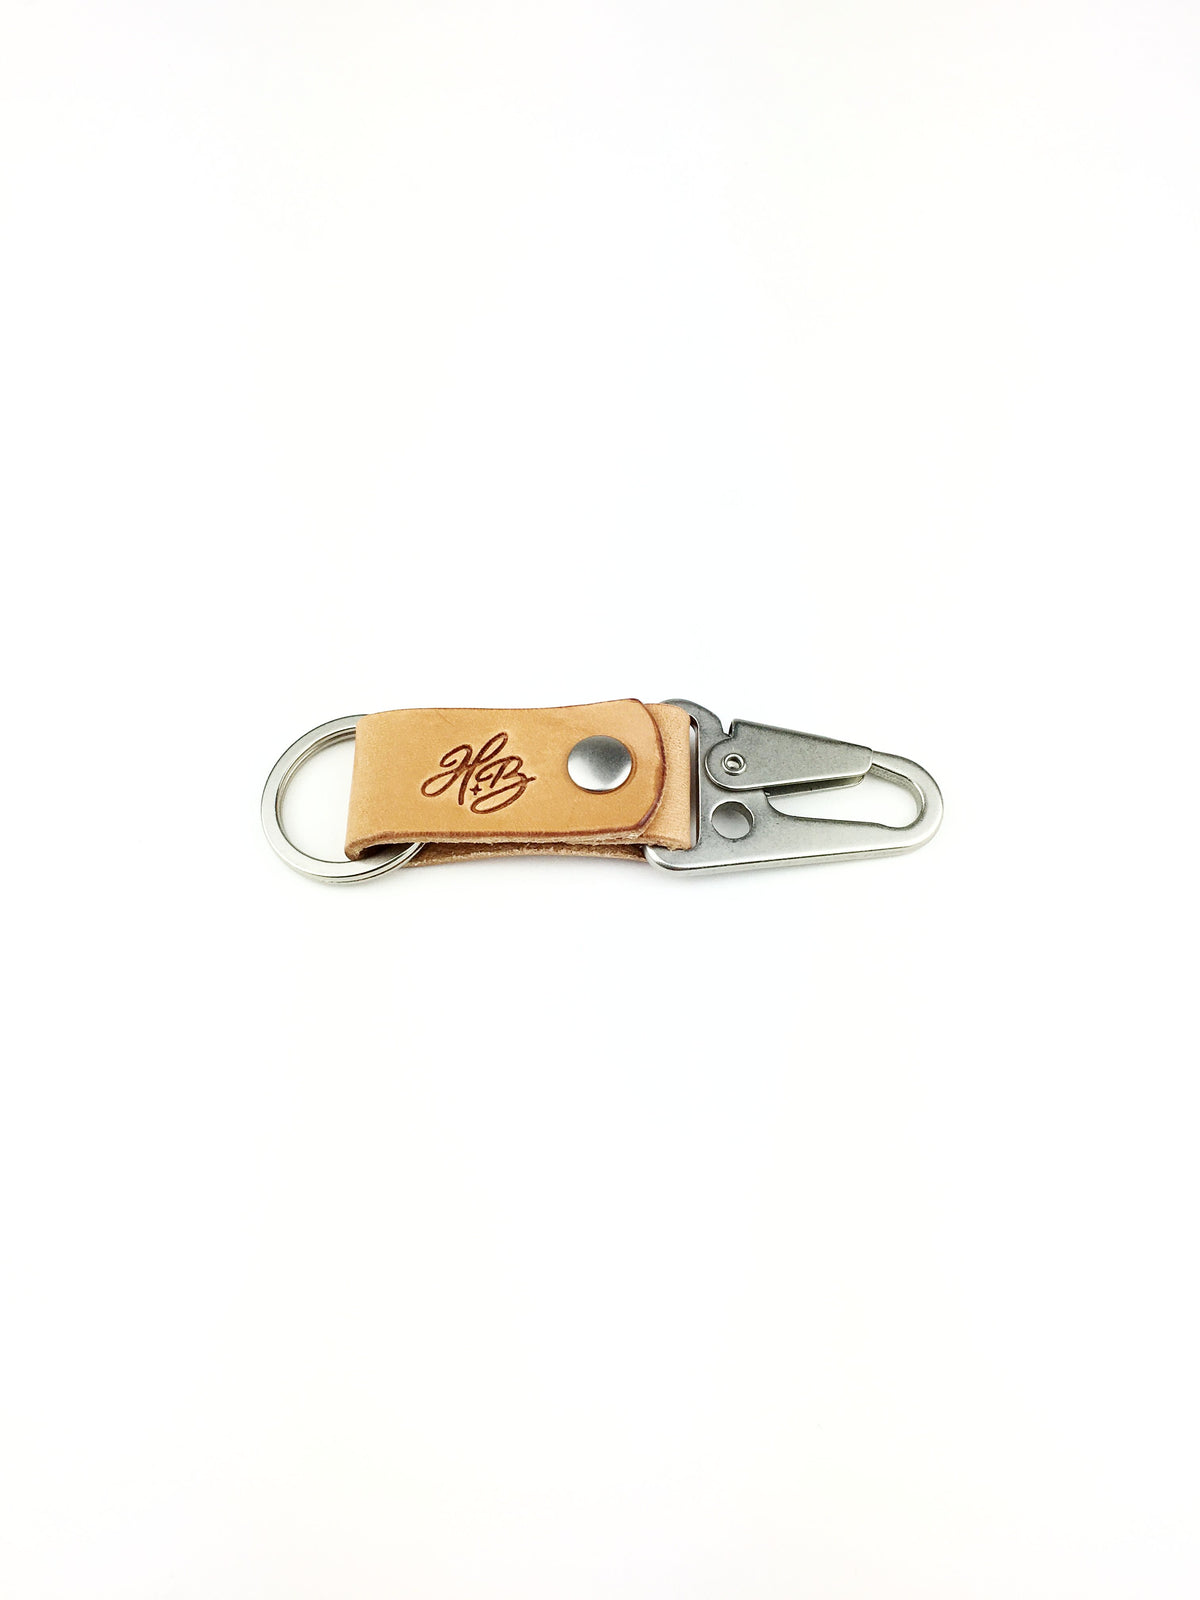 H+B KEY FOB | RUSSET LEATHER KEY FOB